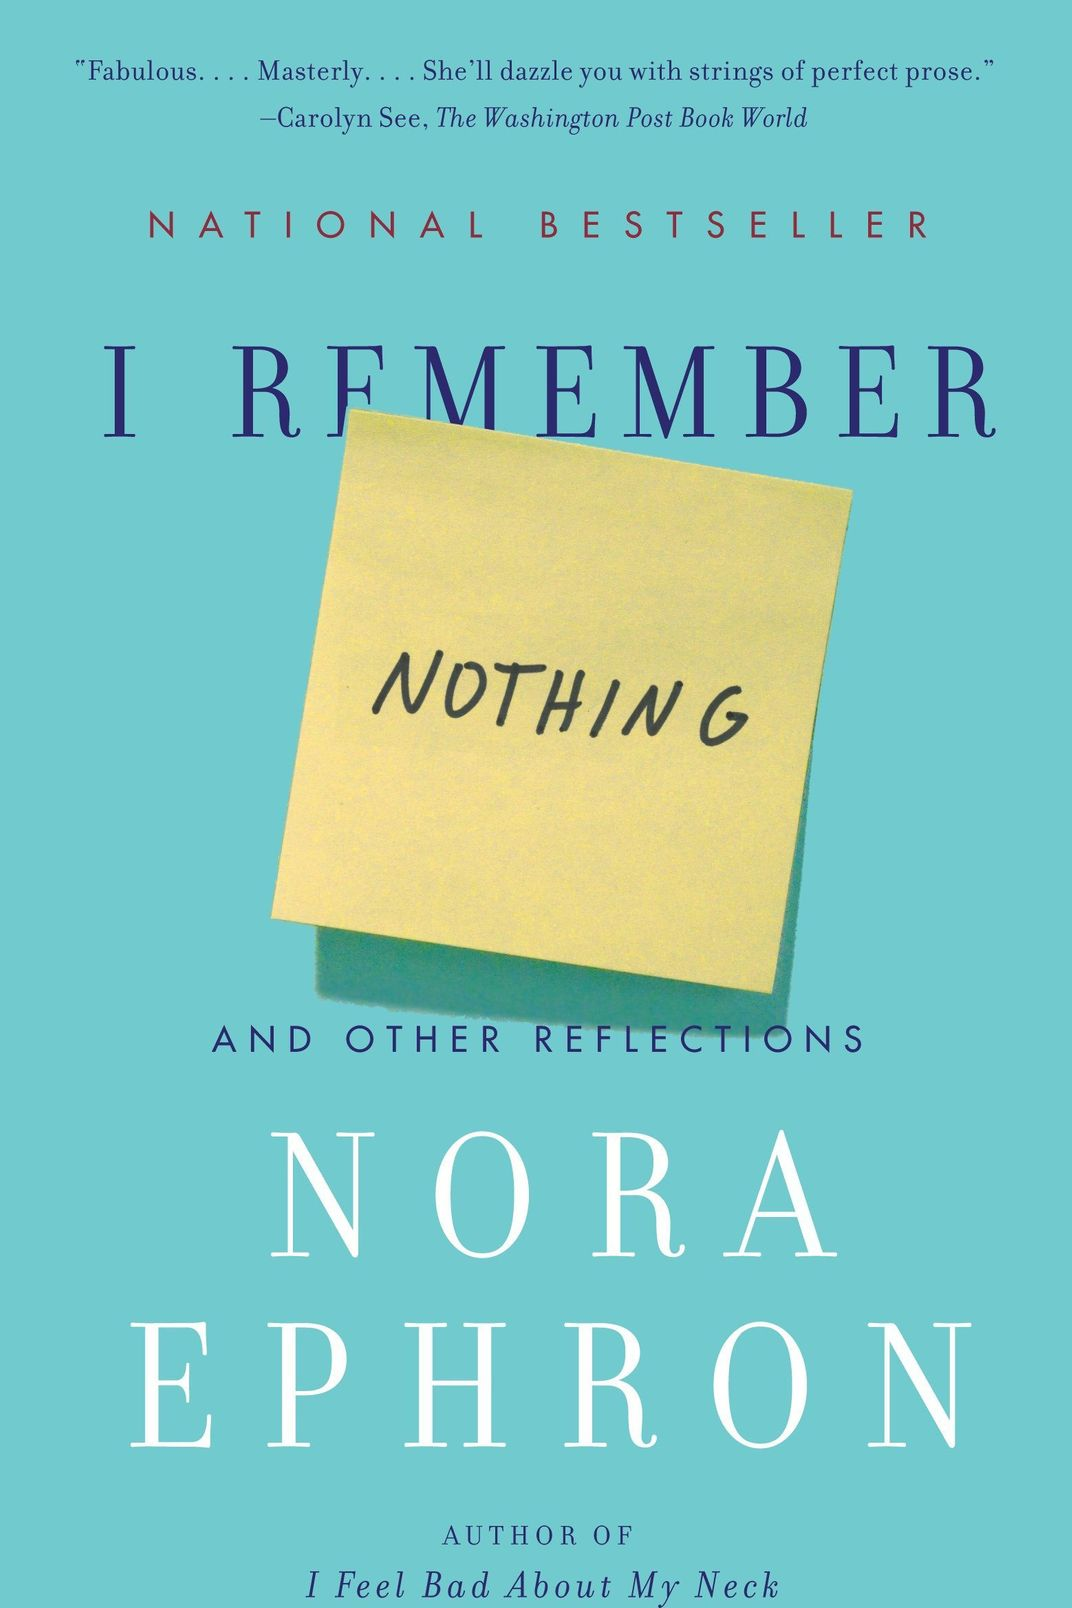 I Remember Nothing and Other Reflections, by Nora Ephron